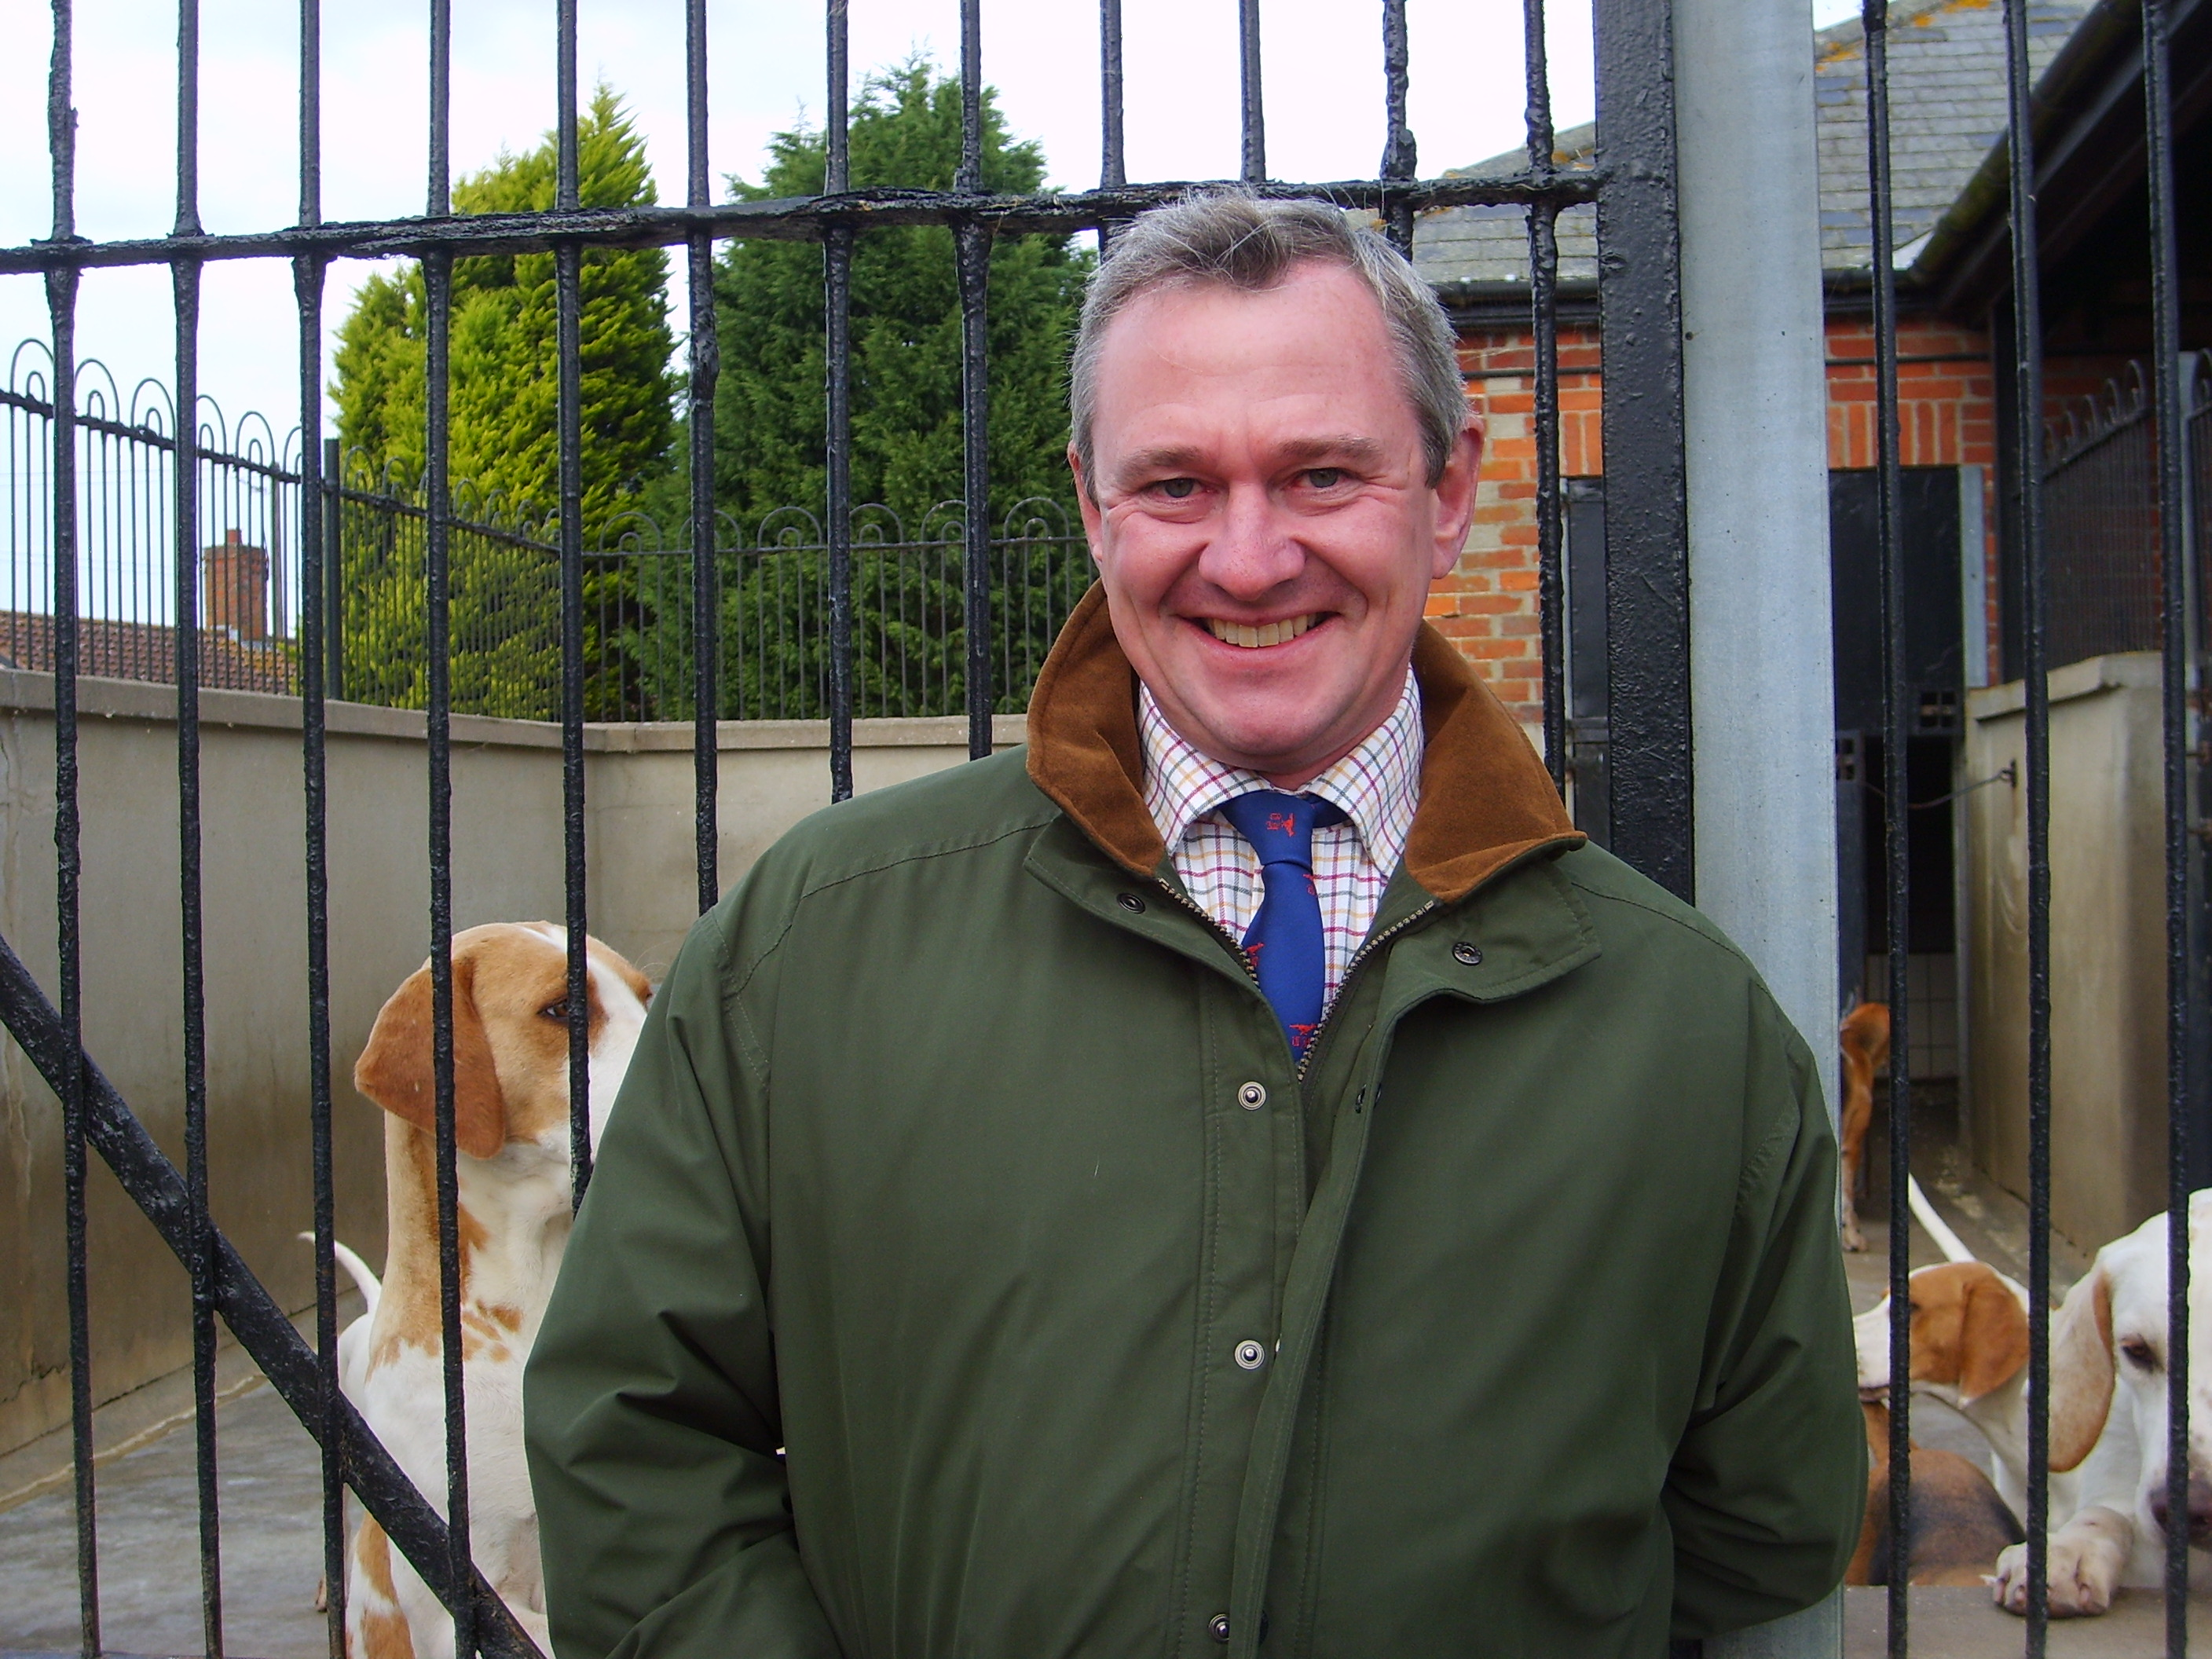 MFH Robin Vestey of the Thurlow, a keen hound man and a hound show judge